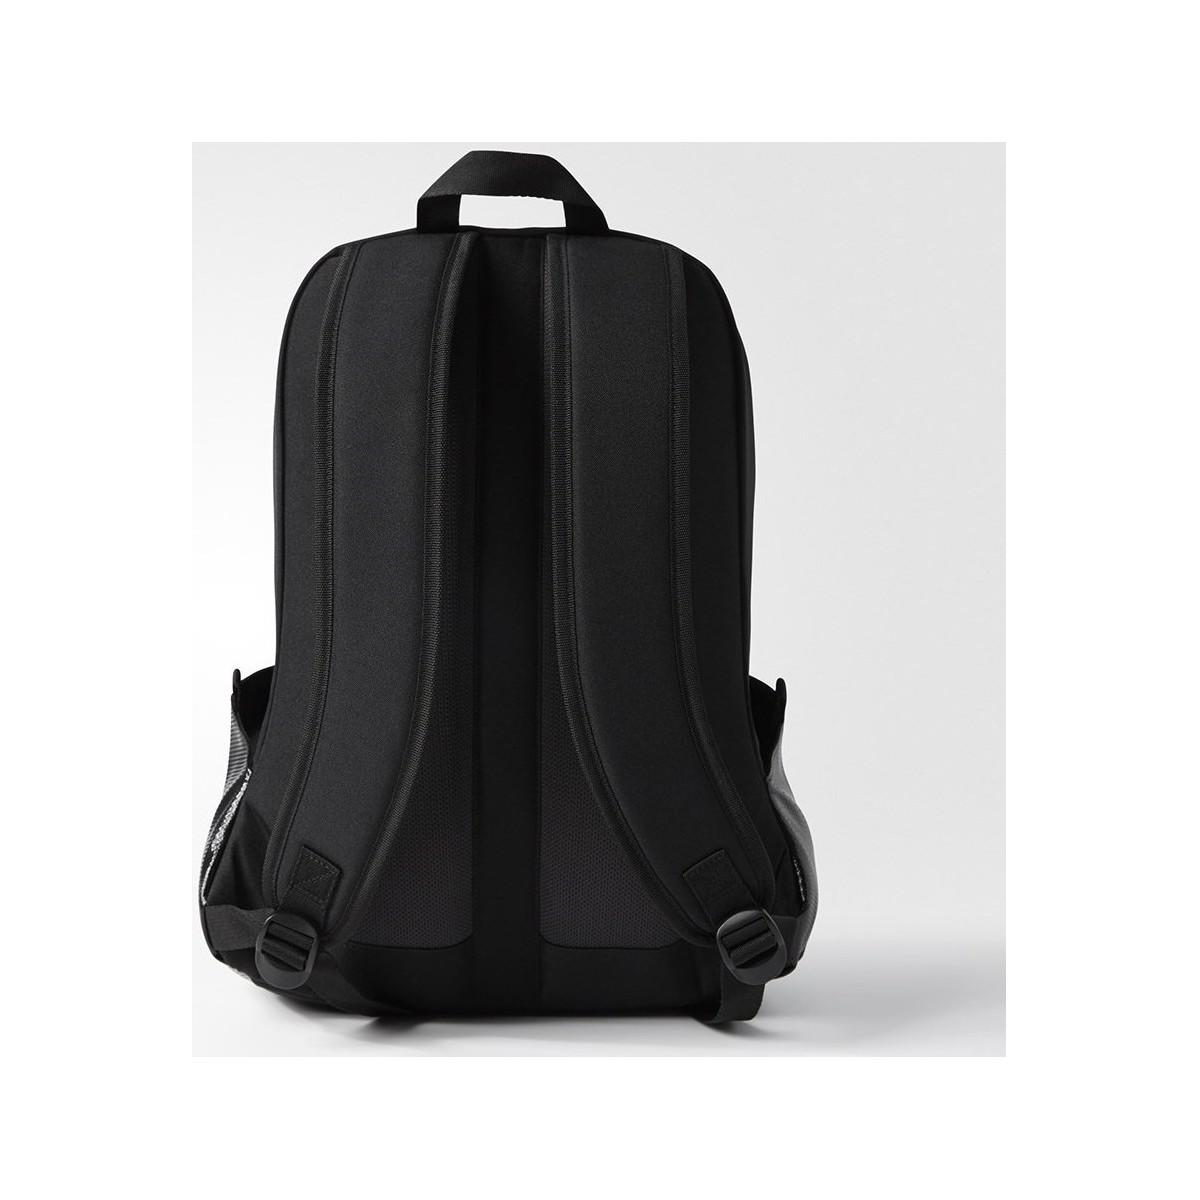 adidas Neopark Sport Men s Backpack In Black in Black for Men - Lyst 22c1fbfc85e4f